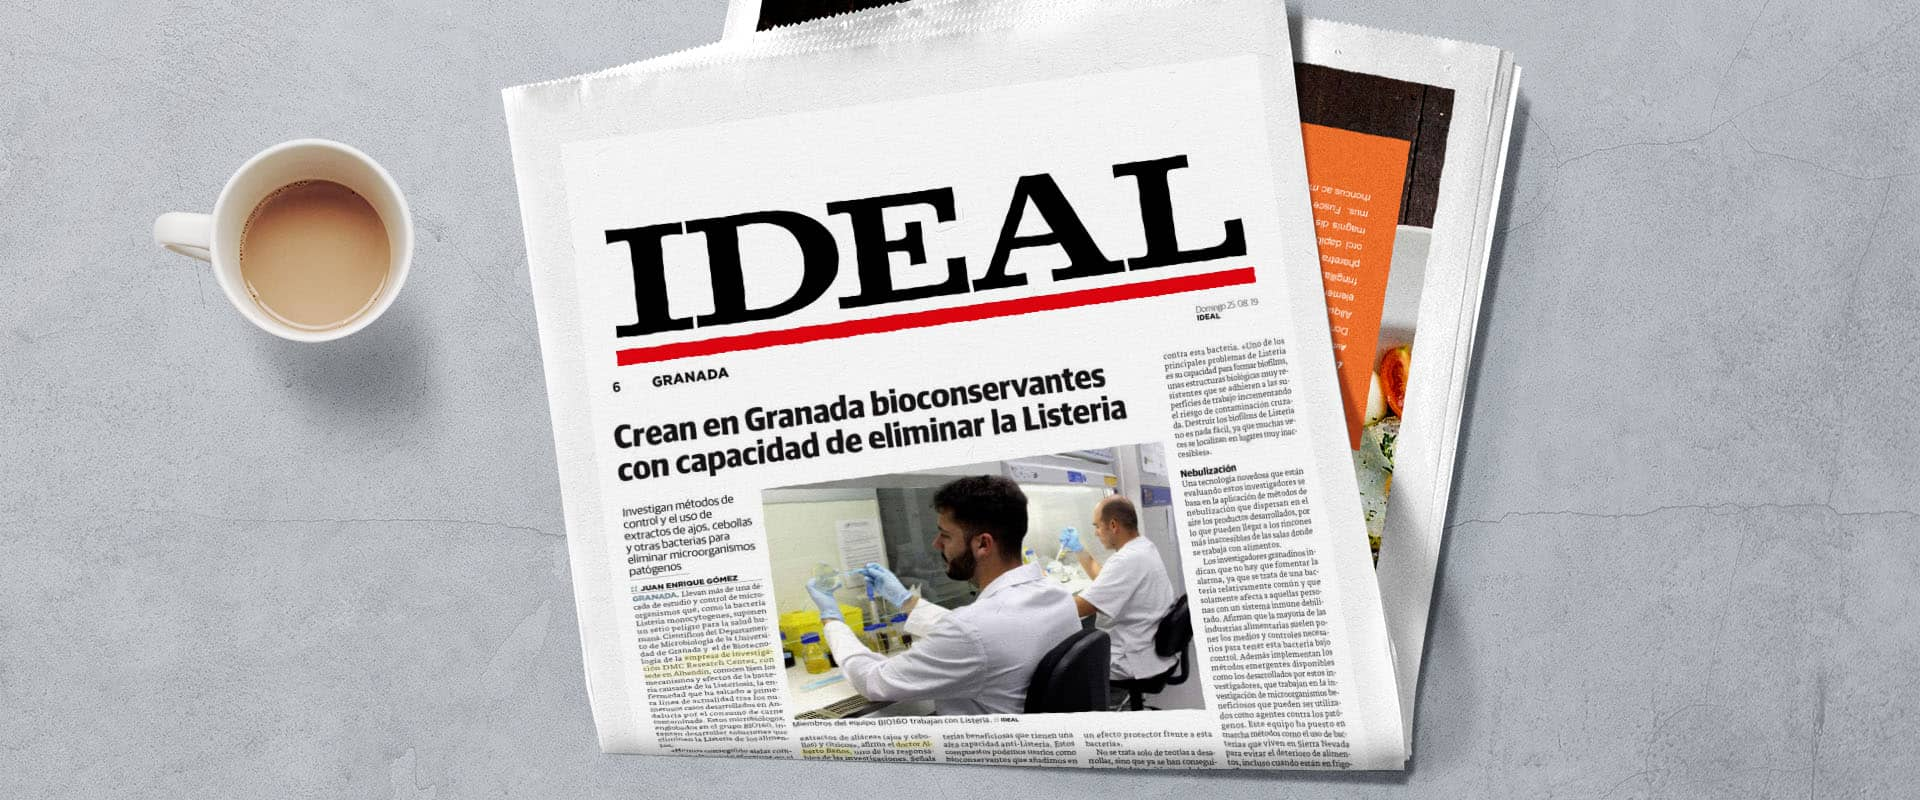 Noticia sobre domca en ideal